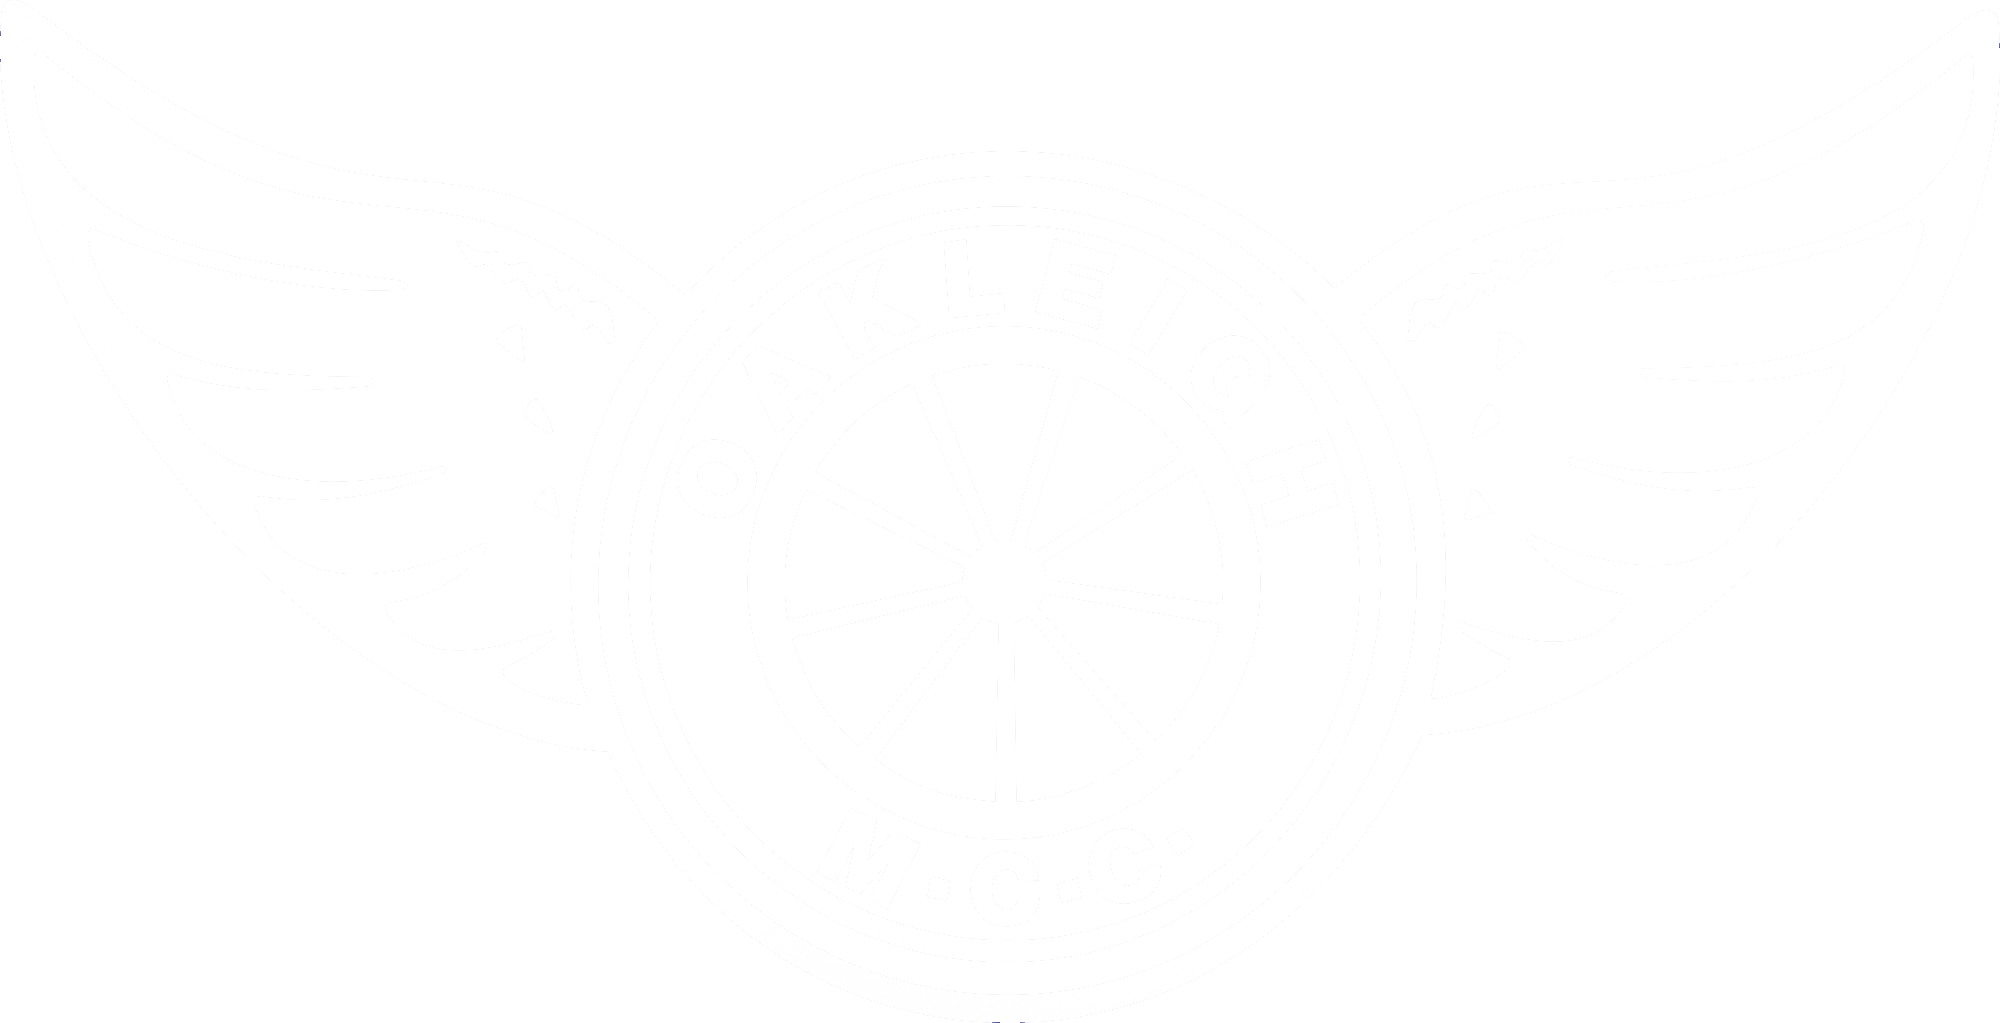 Oakleigh Motorcycle Club